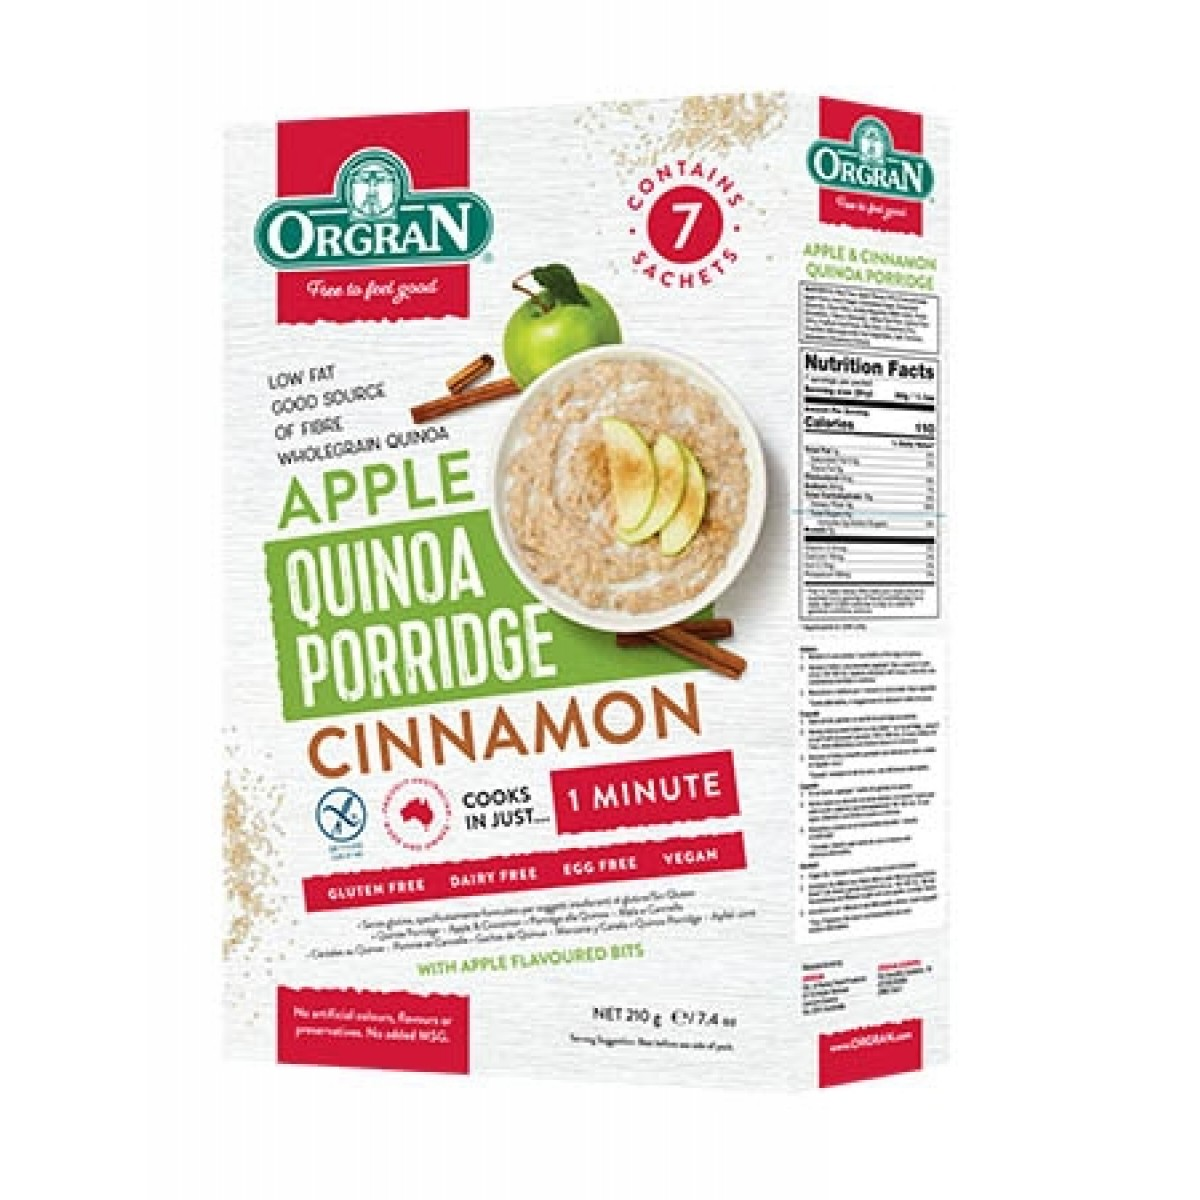 Quinoa Porridge Appel & Cinnamon